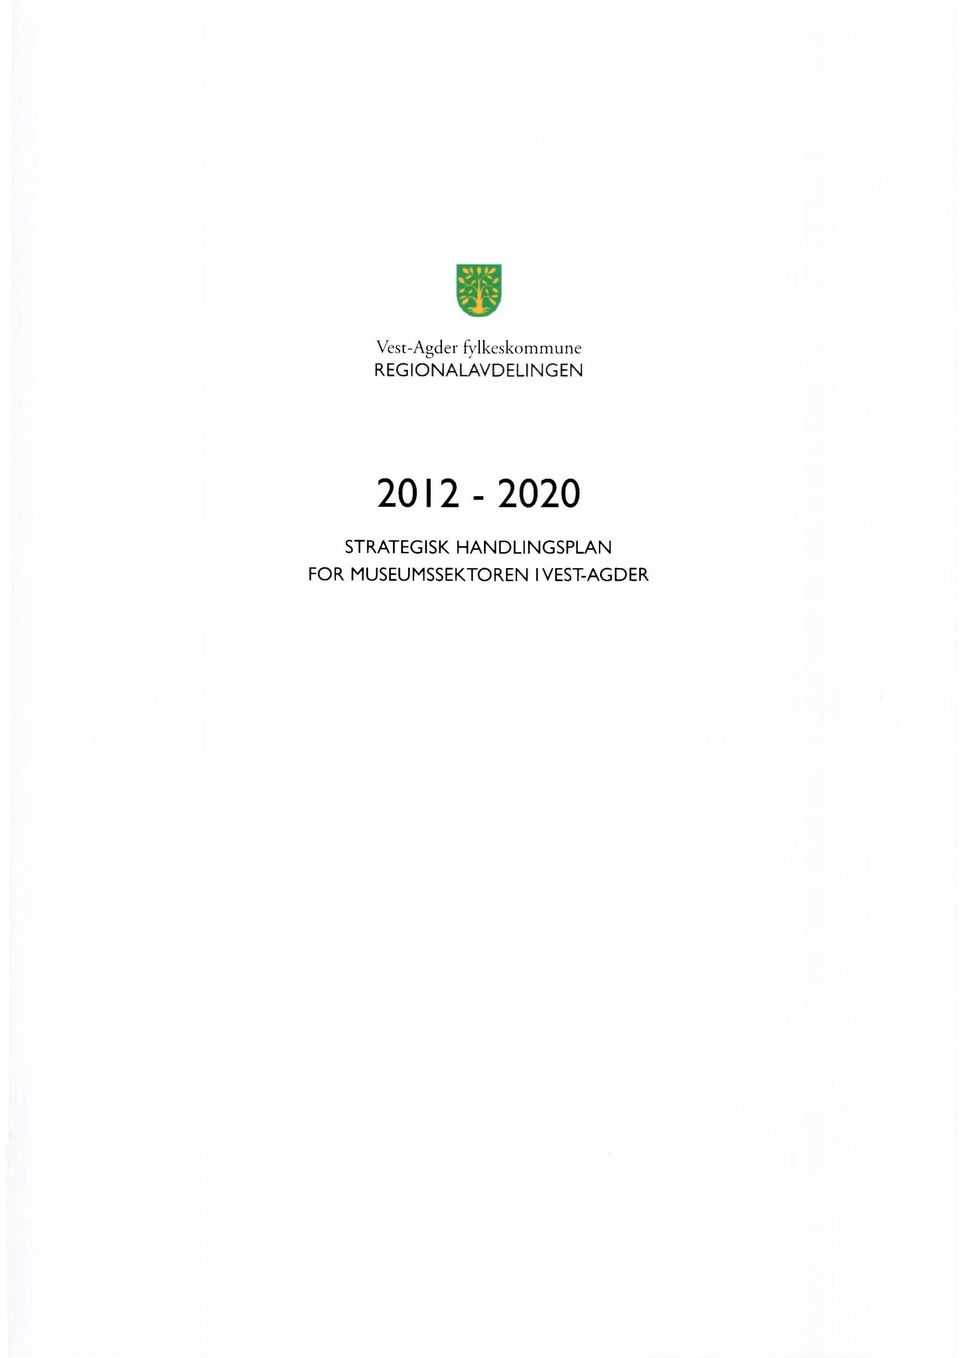 2012-2020 STRATEGISK